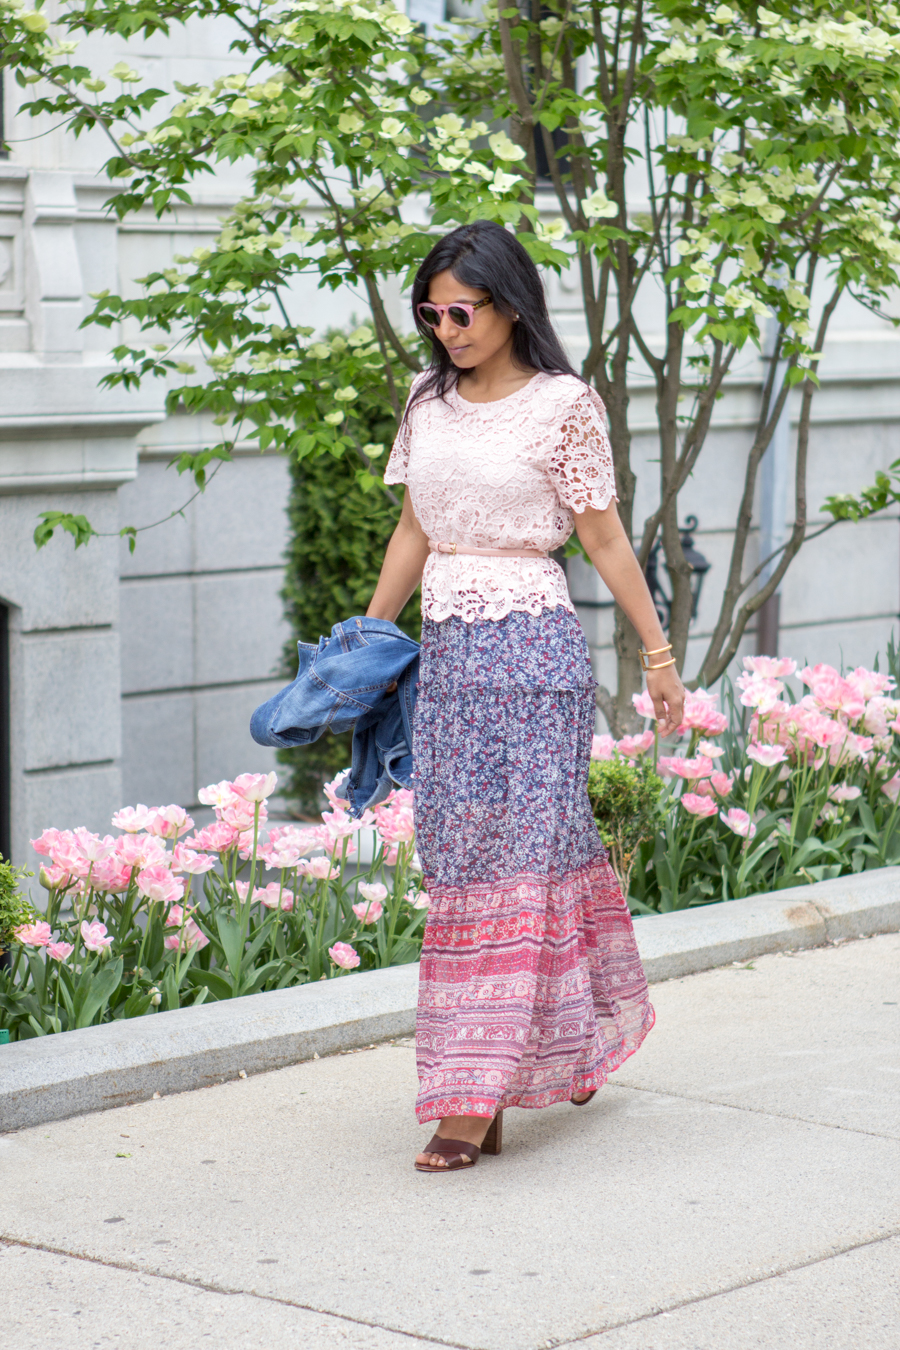 Boston, summer style, summer flowers, city walk, indian blogger, summer, summer style, maxi dress, memorial day outfit, lookbook, boho, blush top, blush belt, petite fashion, what to wear, how to, easy outfit, target style, ann taylor, street level, street style, style blog